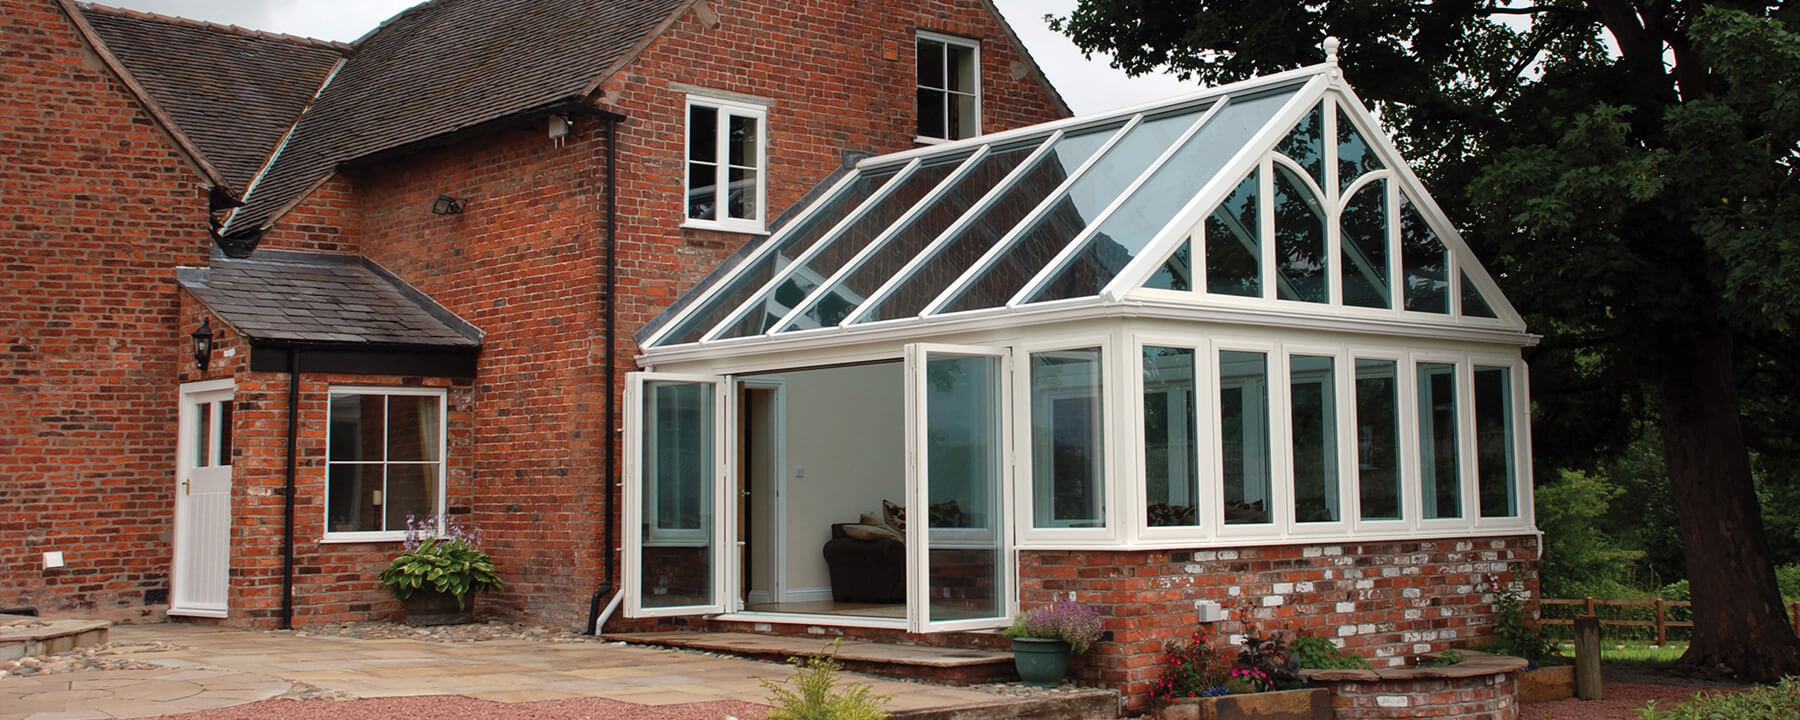 Gable Conservatories In Leicester Kettell Windows